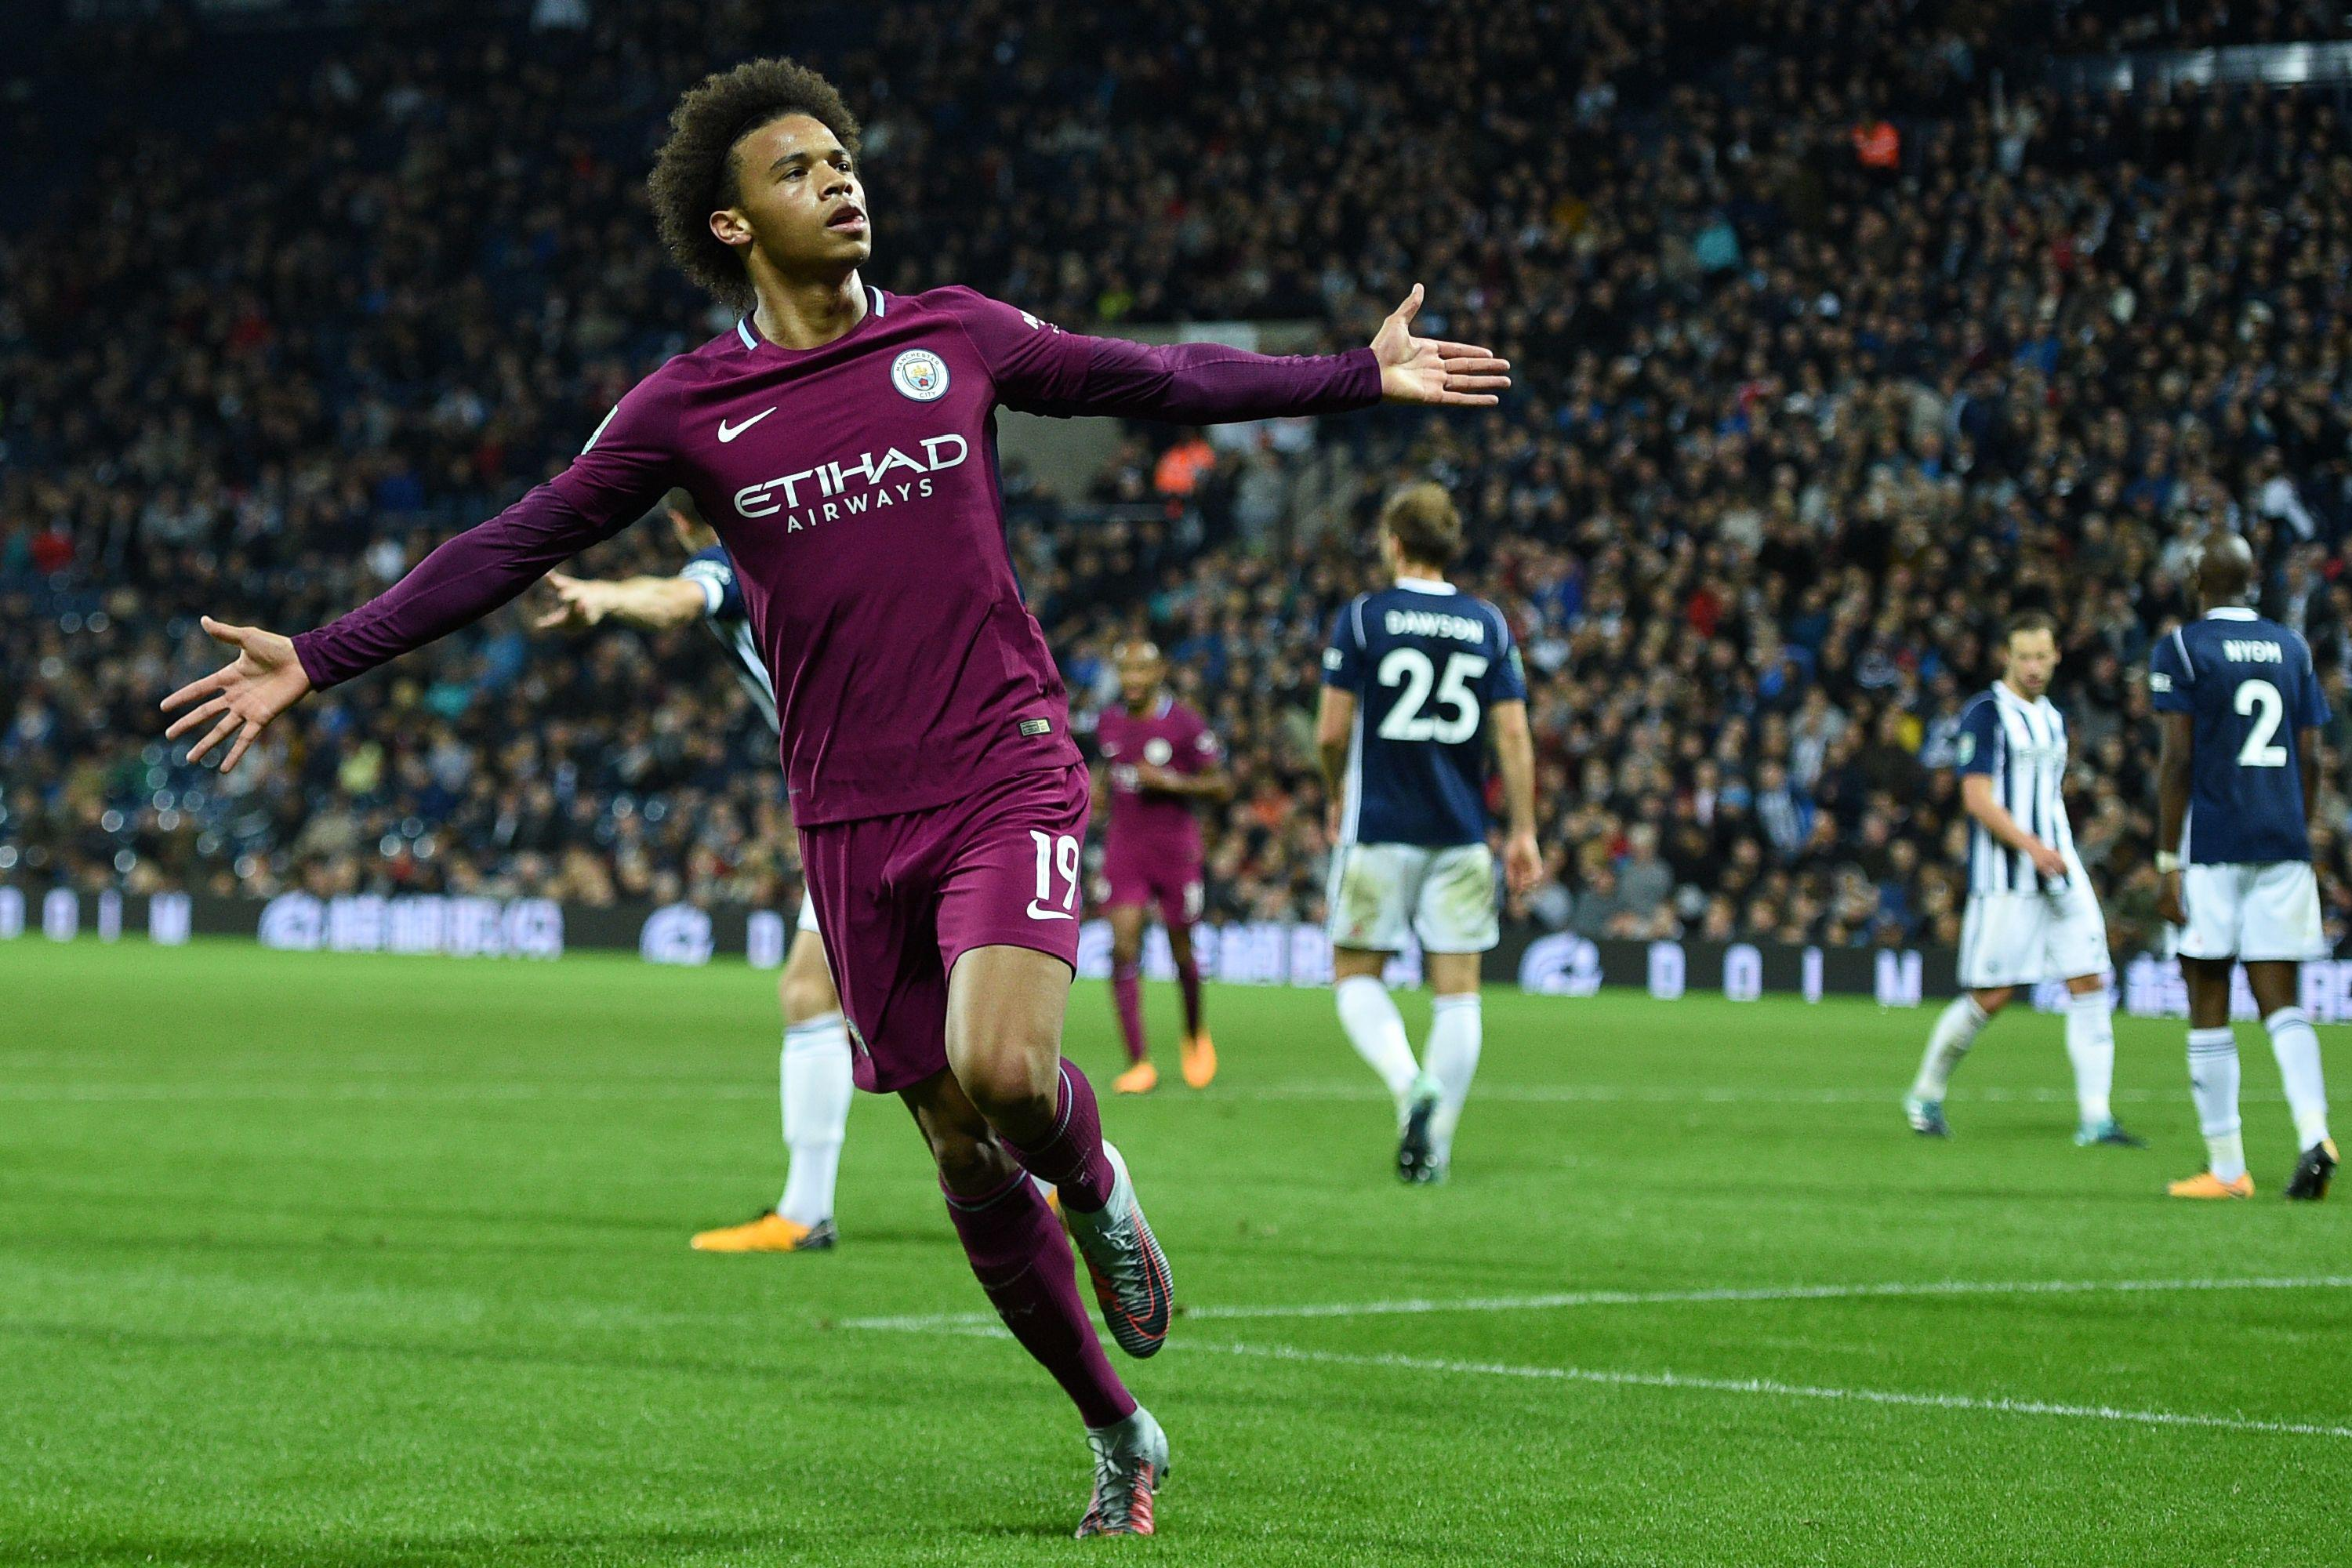 Sane was at the double for City